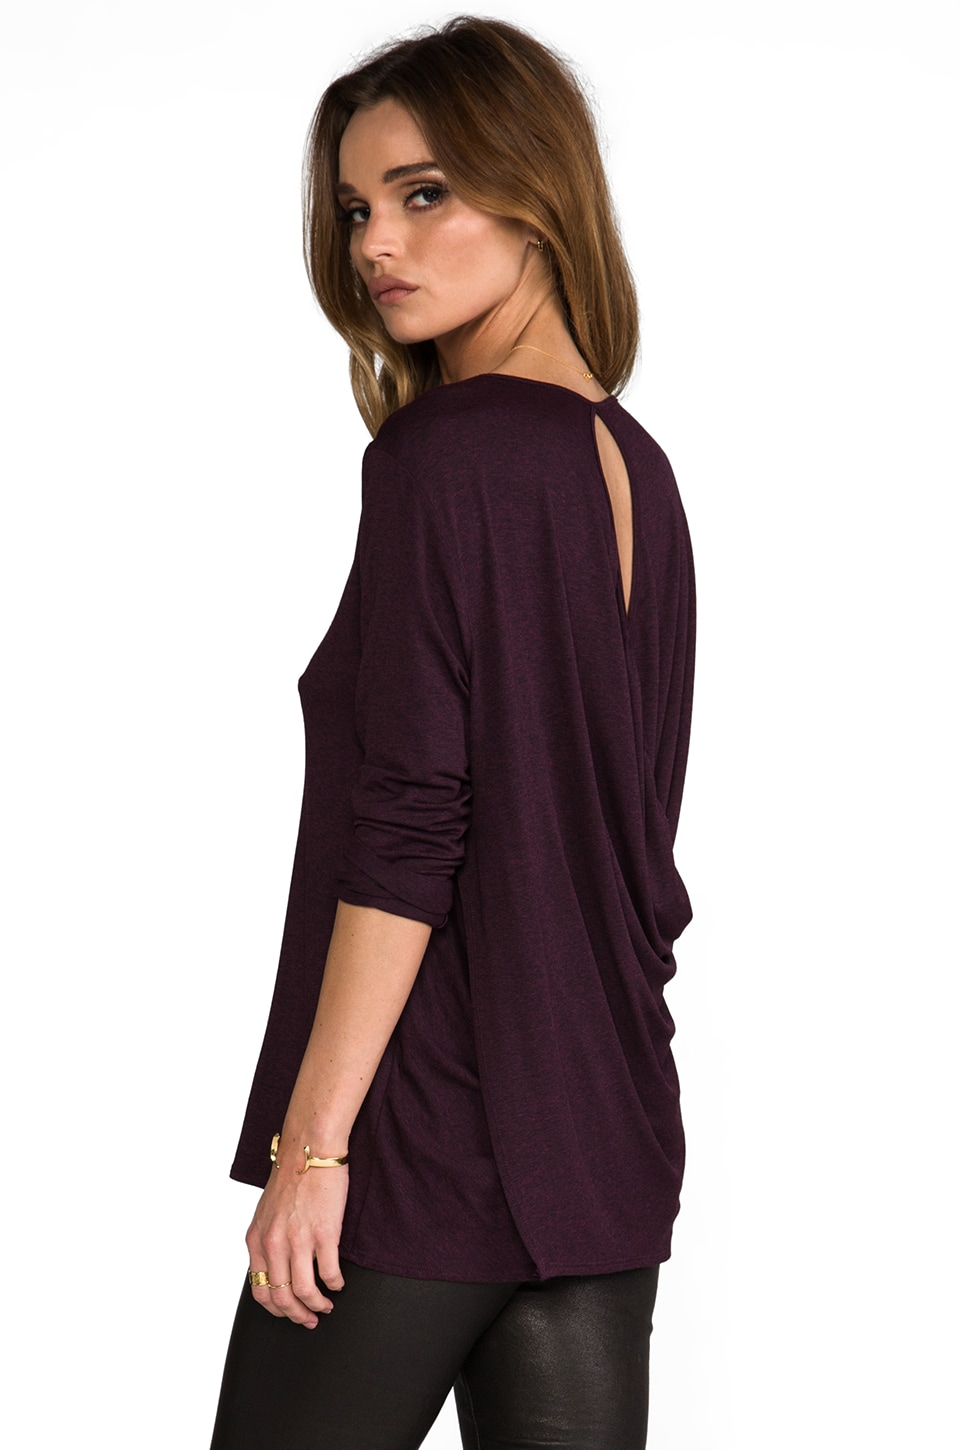 Riller & Fount Konrad Draped Open Back Top in Borgia